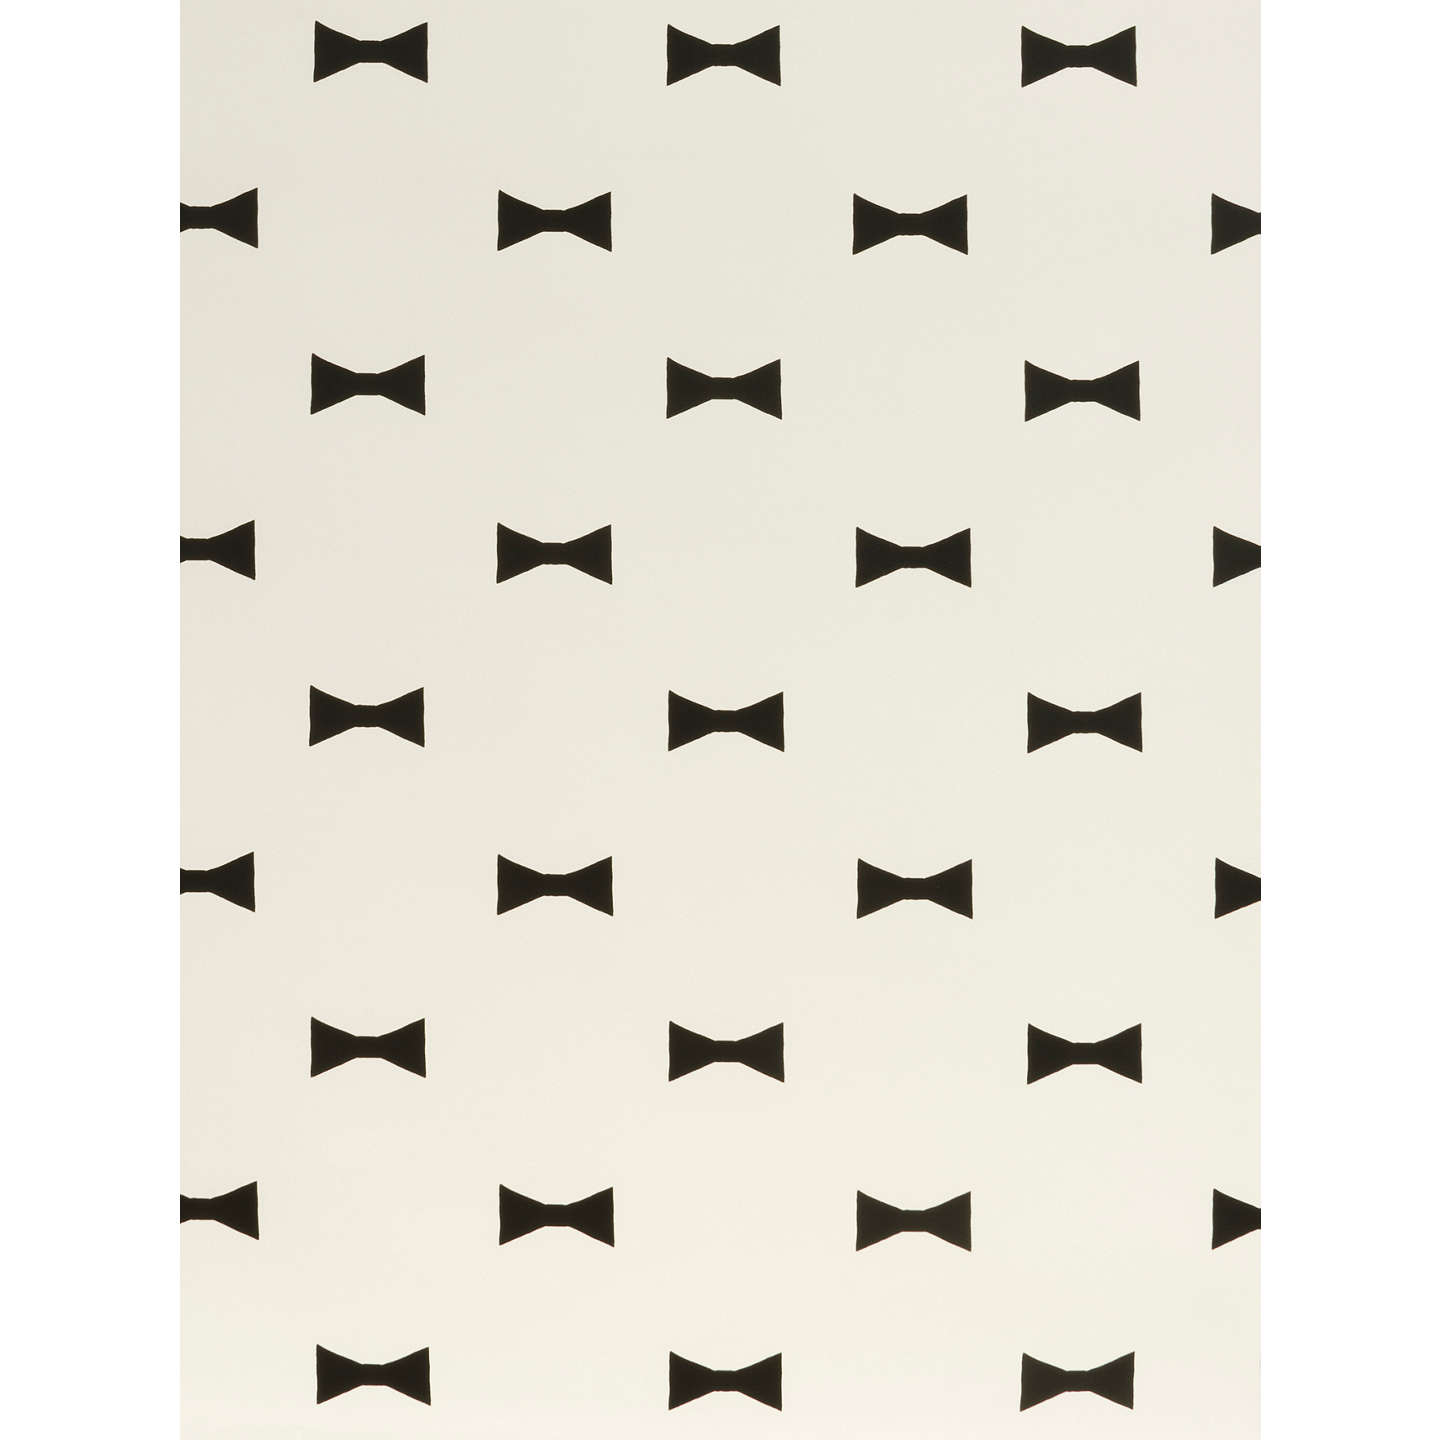 Buykate Spade New York For GP J Baker Whimsies Bow Ties Wallpaper Dalmation W3324